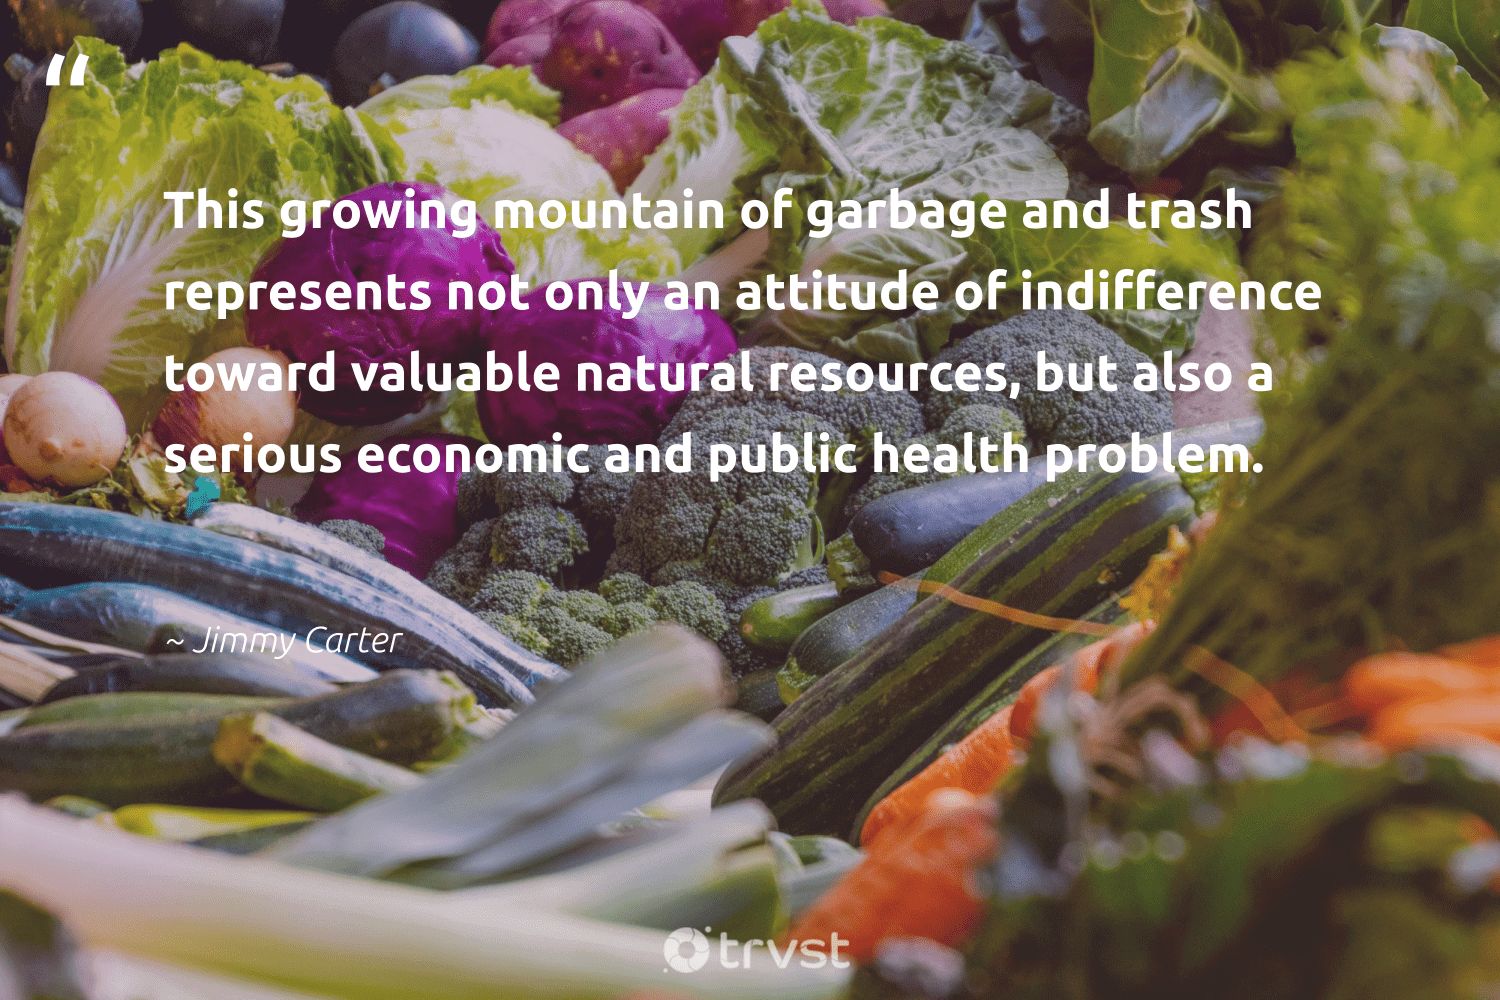 """""""This growing mountain of garbage and trash represents not only an attitude of indifference toward valuable natural resources, but also a serious economic and public health problem.""""  - Jimmy Carter #trvst #quotes #trash #garbage #mountain #natural #health #healthyliving #wastenotwantnot #mindset #gogreen #wellbeing"""